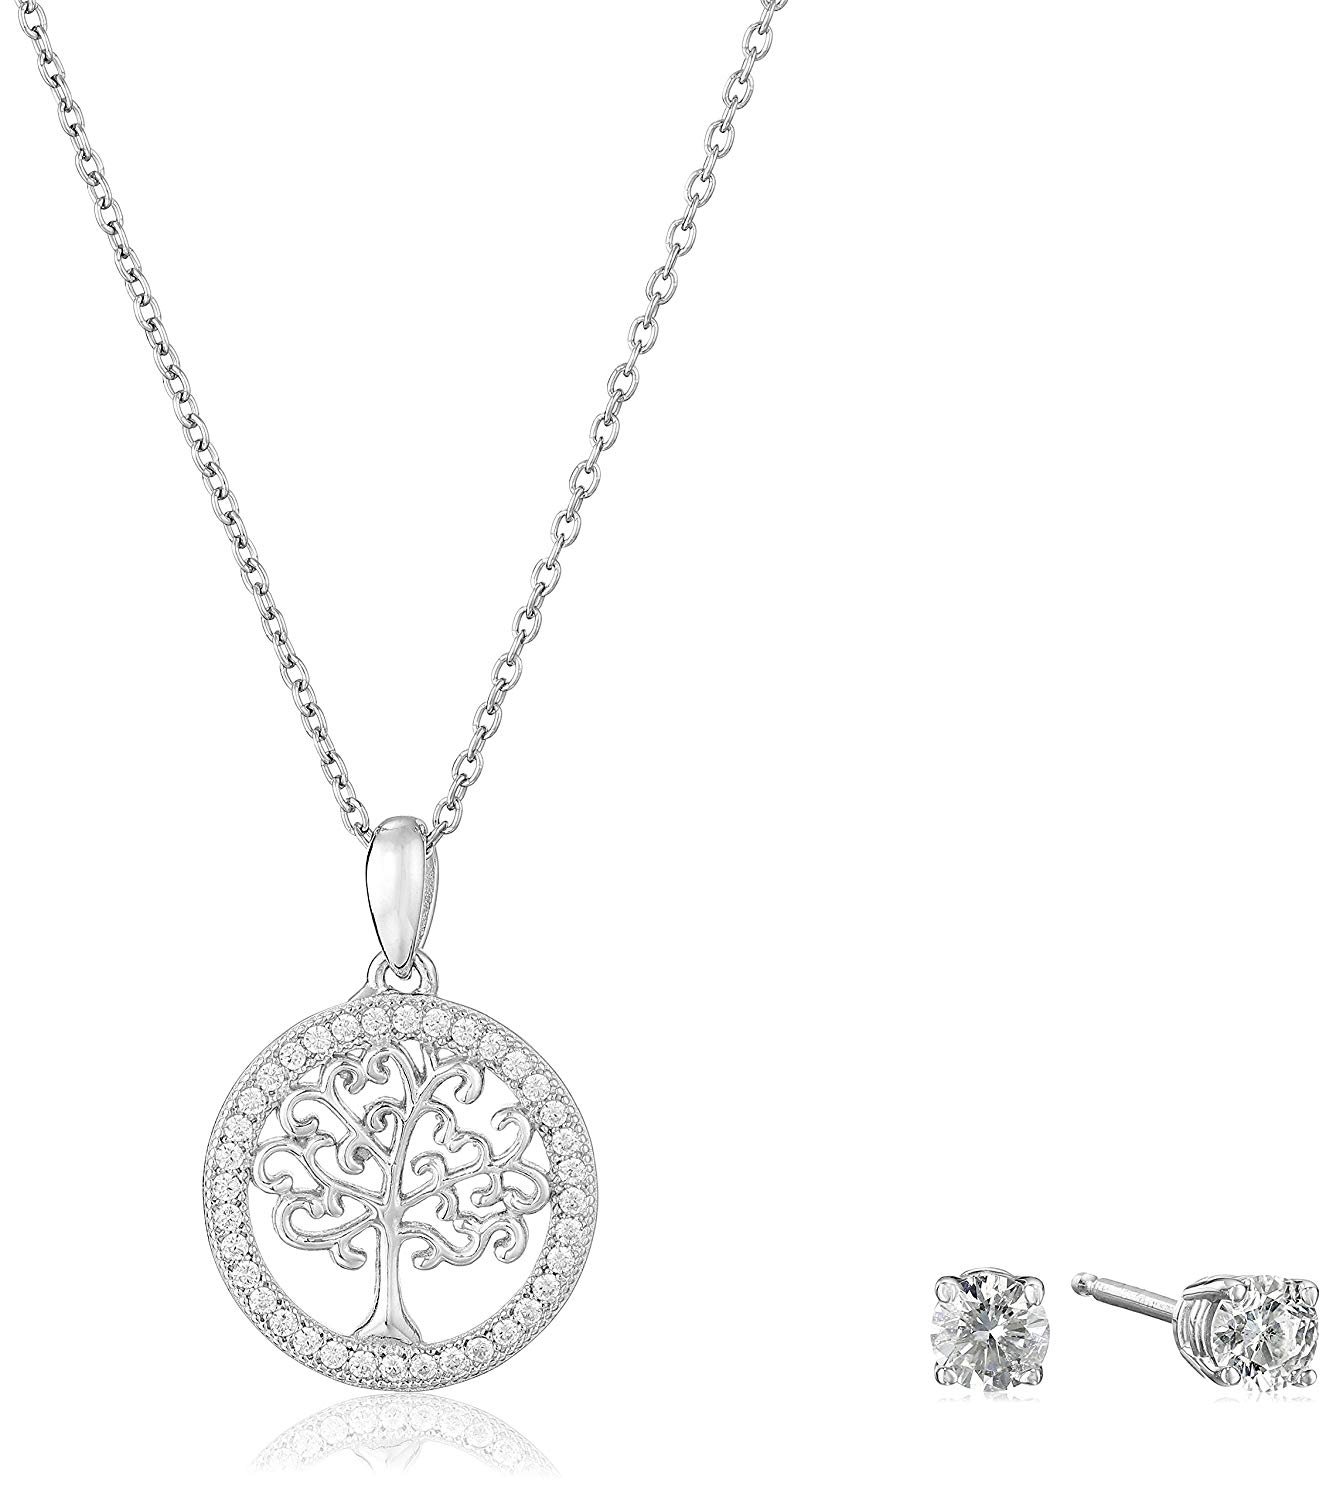 """925 Sterling Silver AAA Cubic Zirconia Family Tree of Life Pendant Necklace and Earrings Jewelry Set, 16"""" + Extender (1.19 cttw)"""